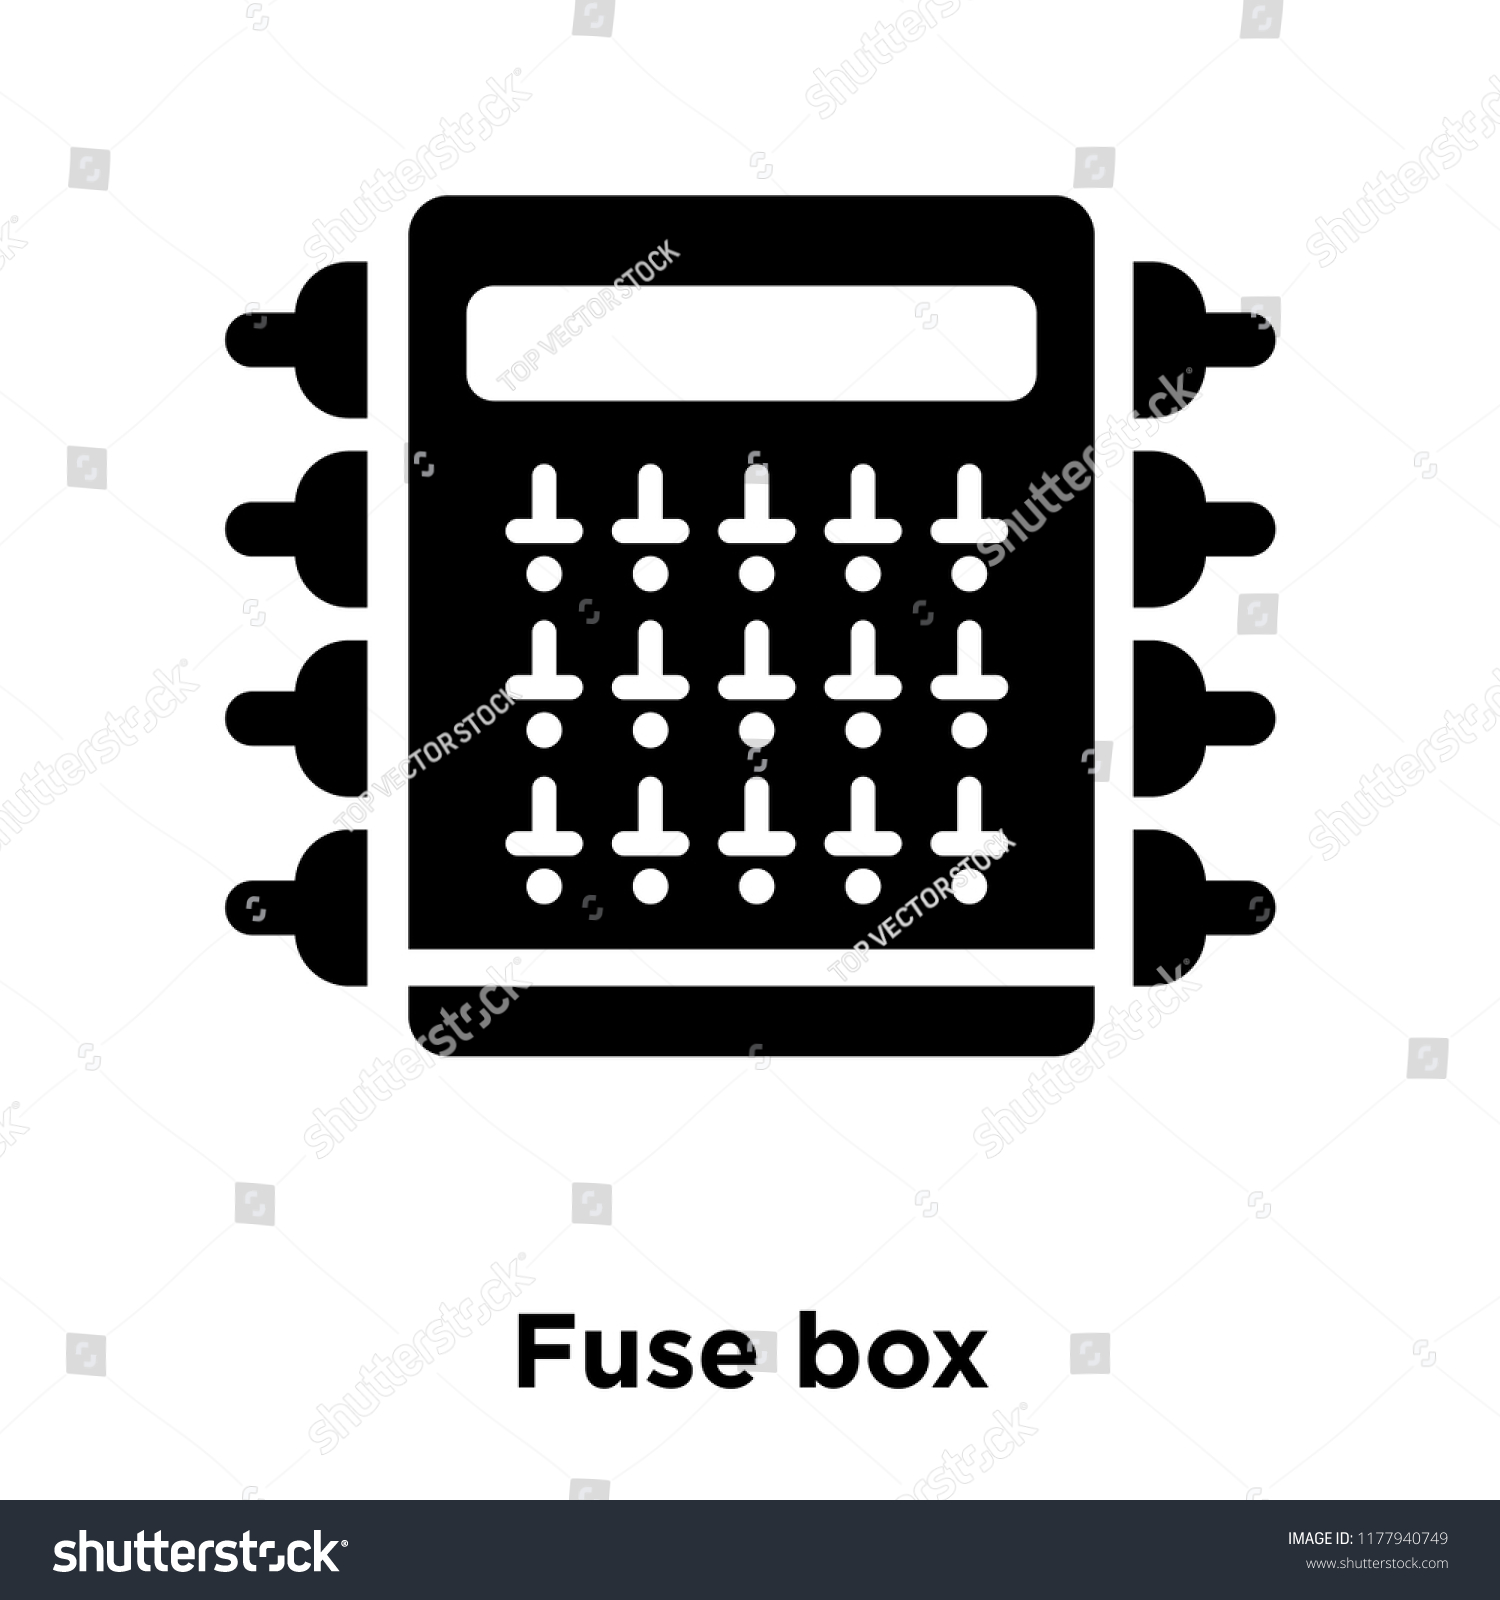 Fuse box icon vector isolated on white background, logo concept of Fuse box  sign on